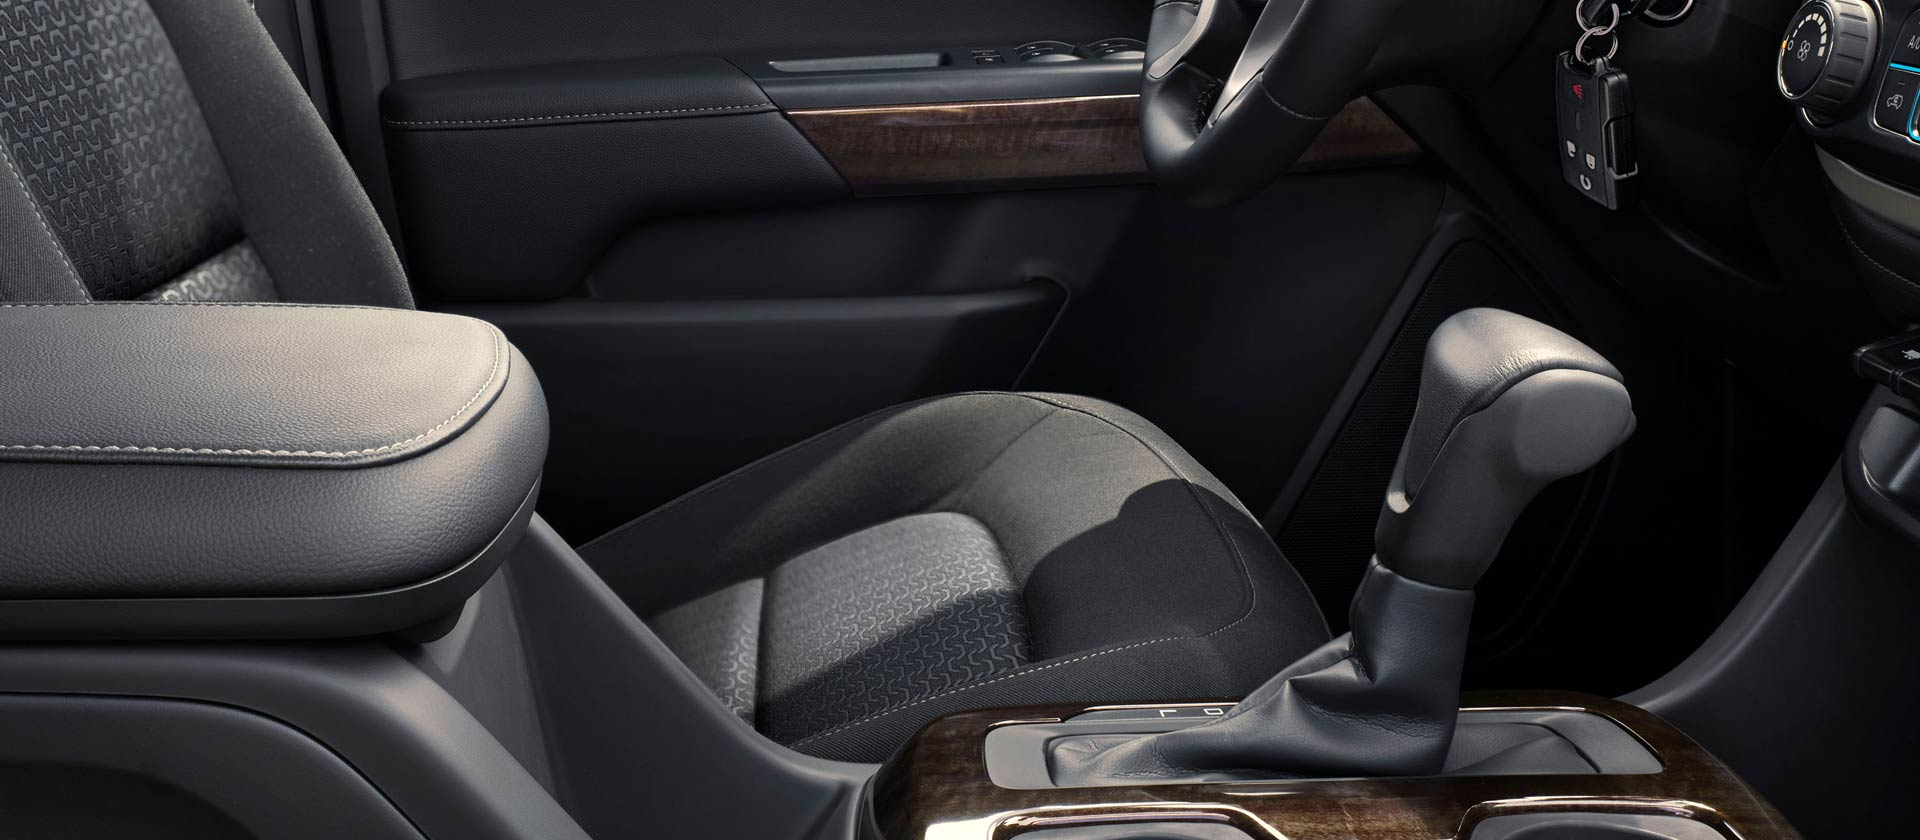 Stylish Touches in the Cab of the GMC Canyon